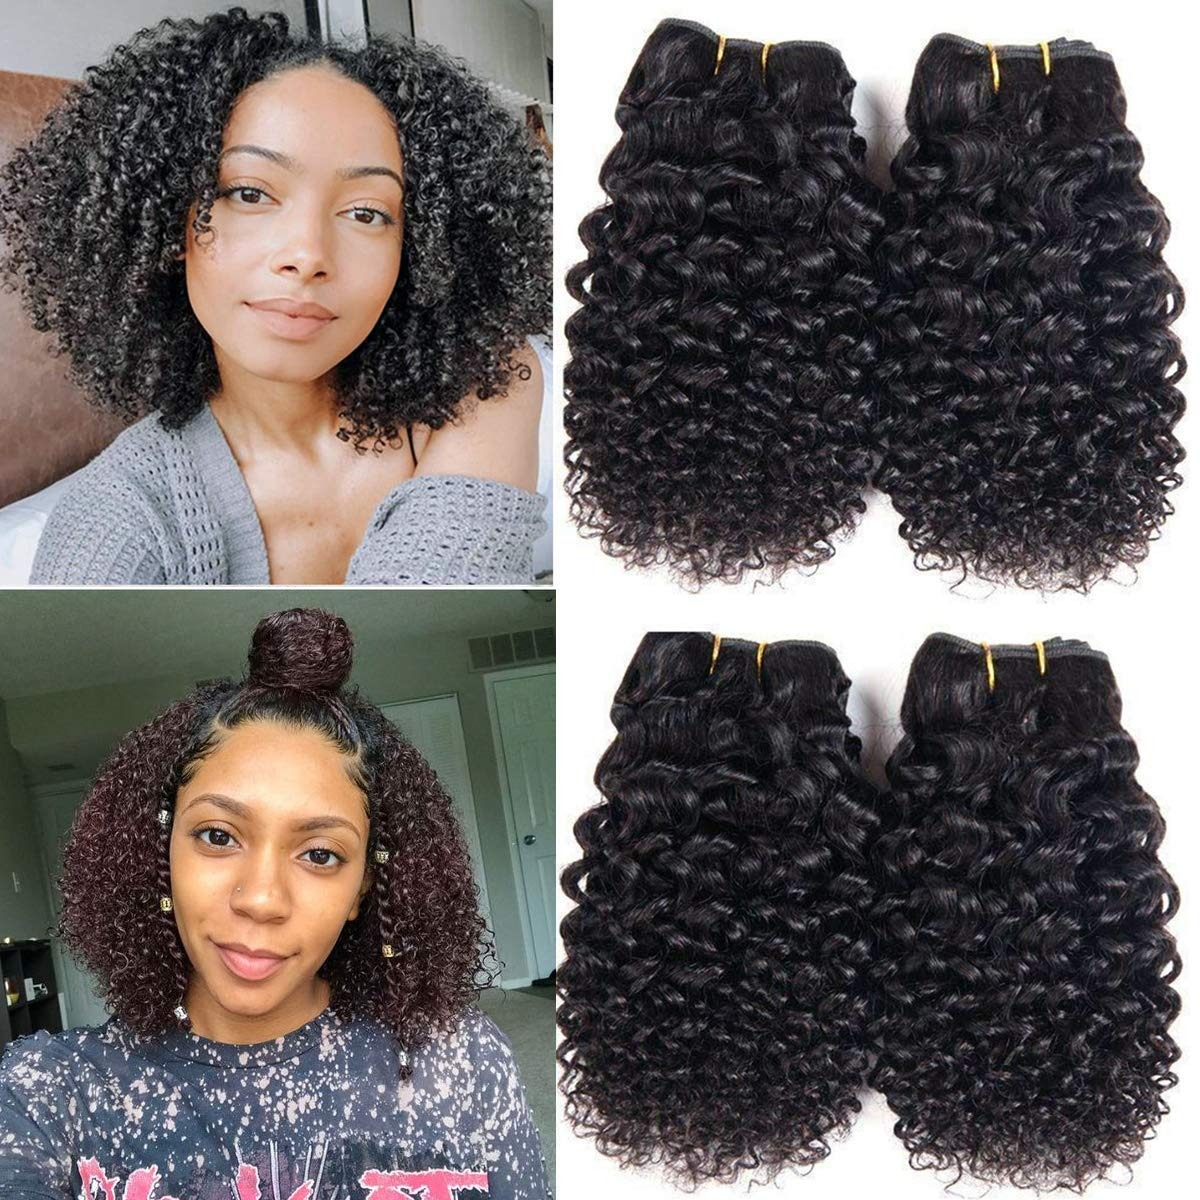 10 Inch Curly Weave